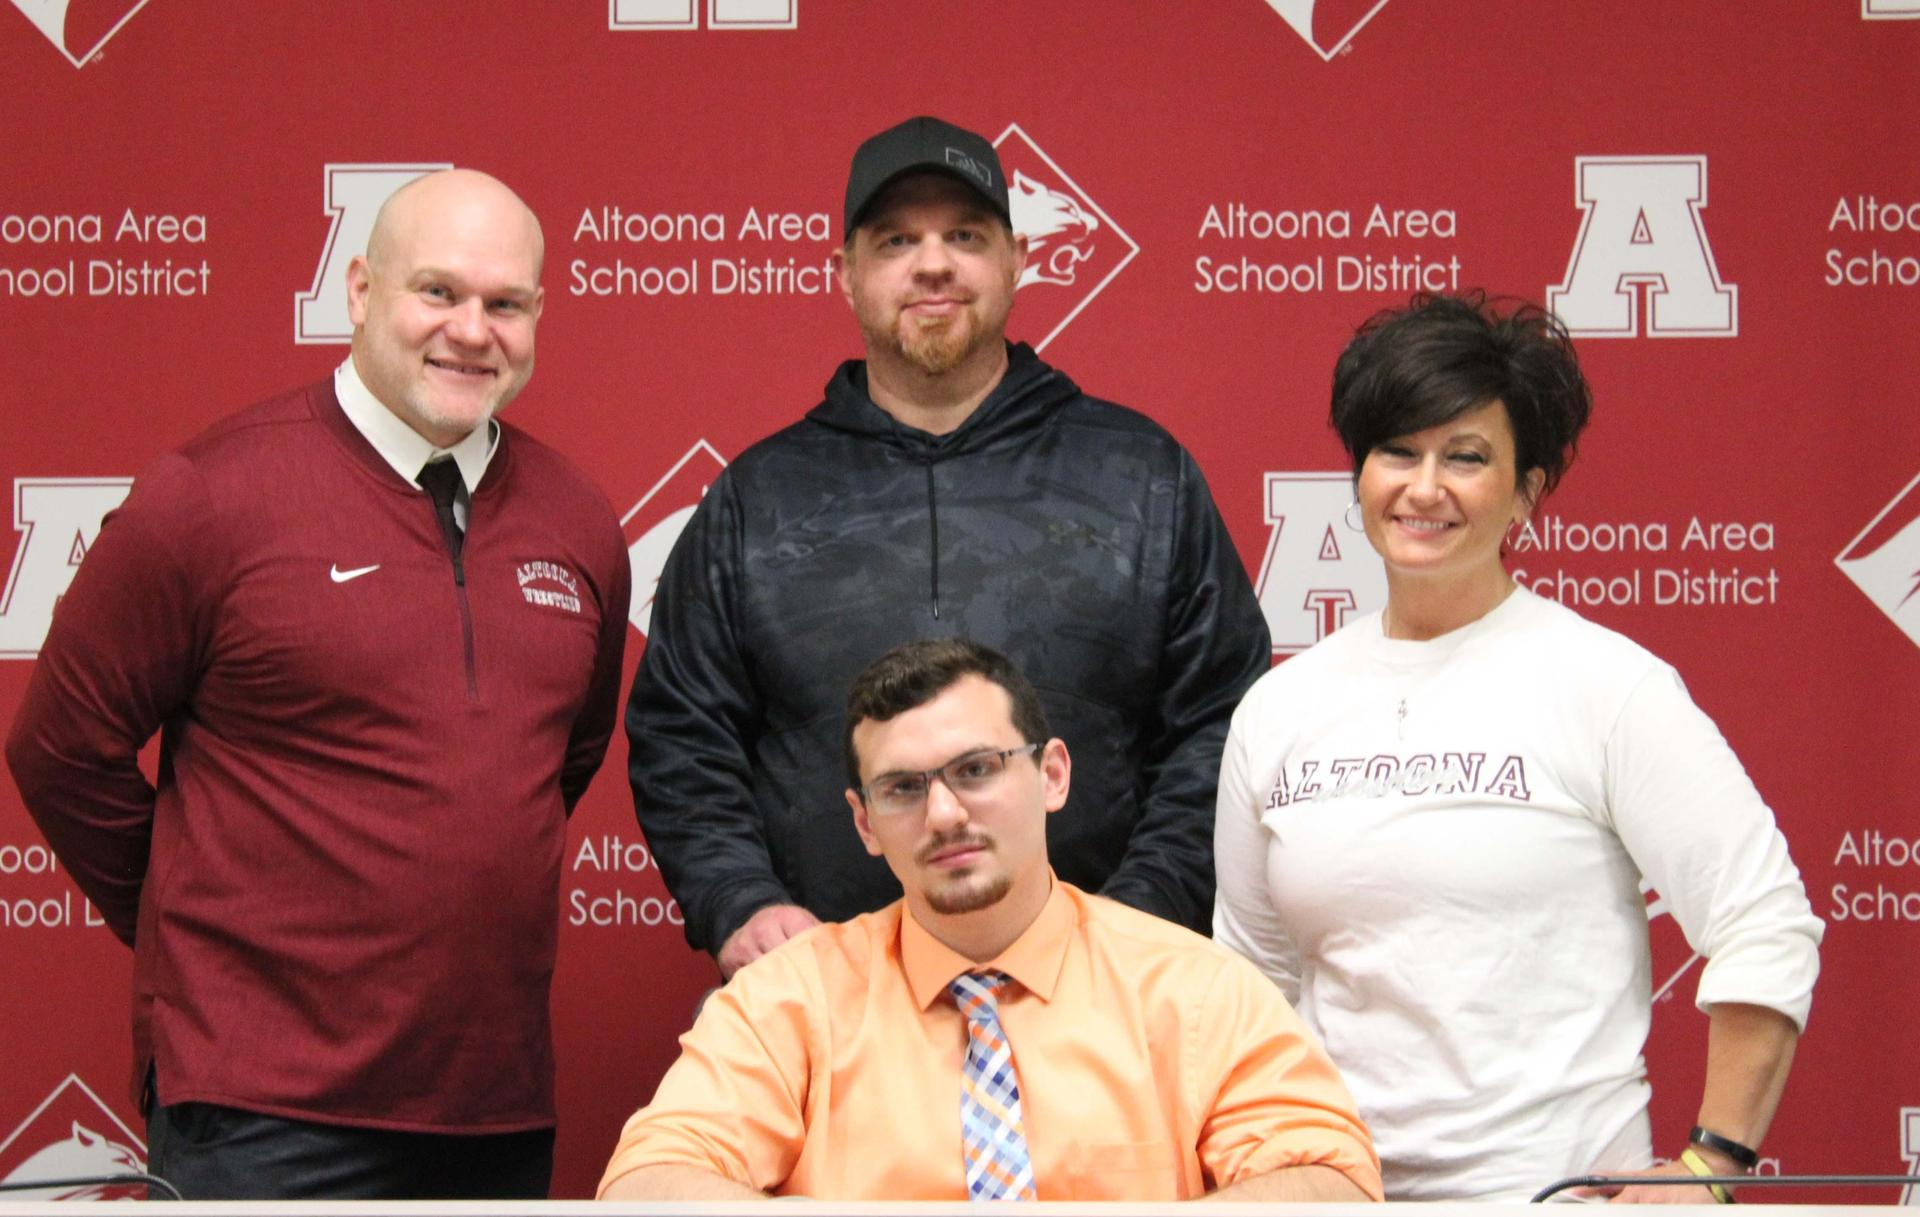 Nathan Simmers, Coach Gilbert and Family